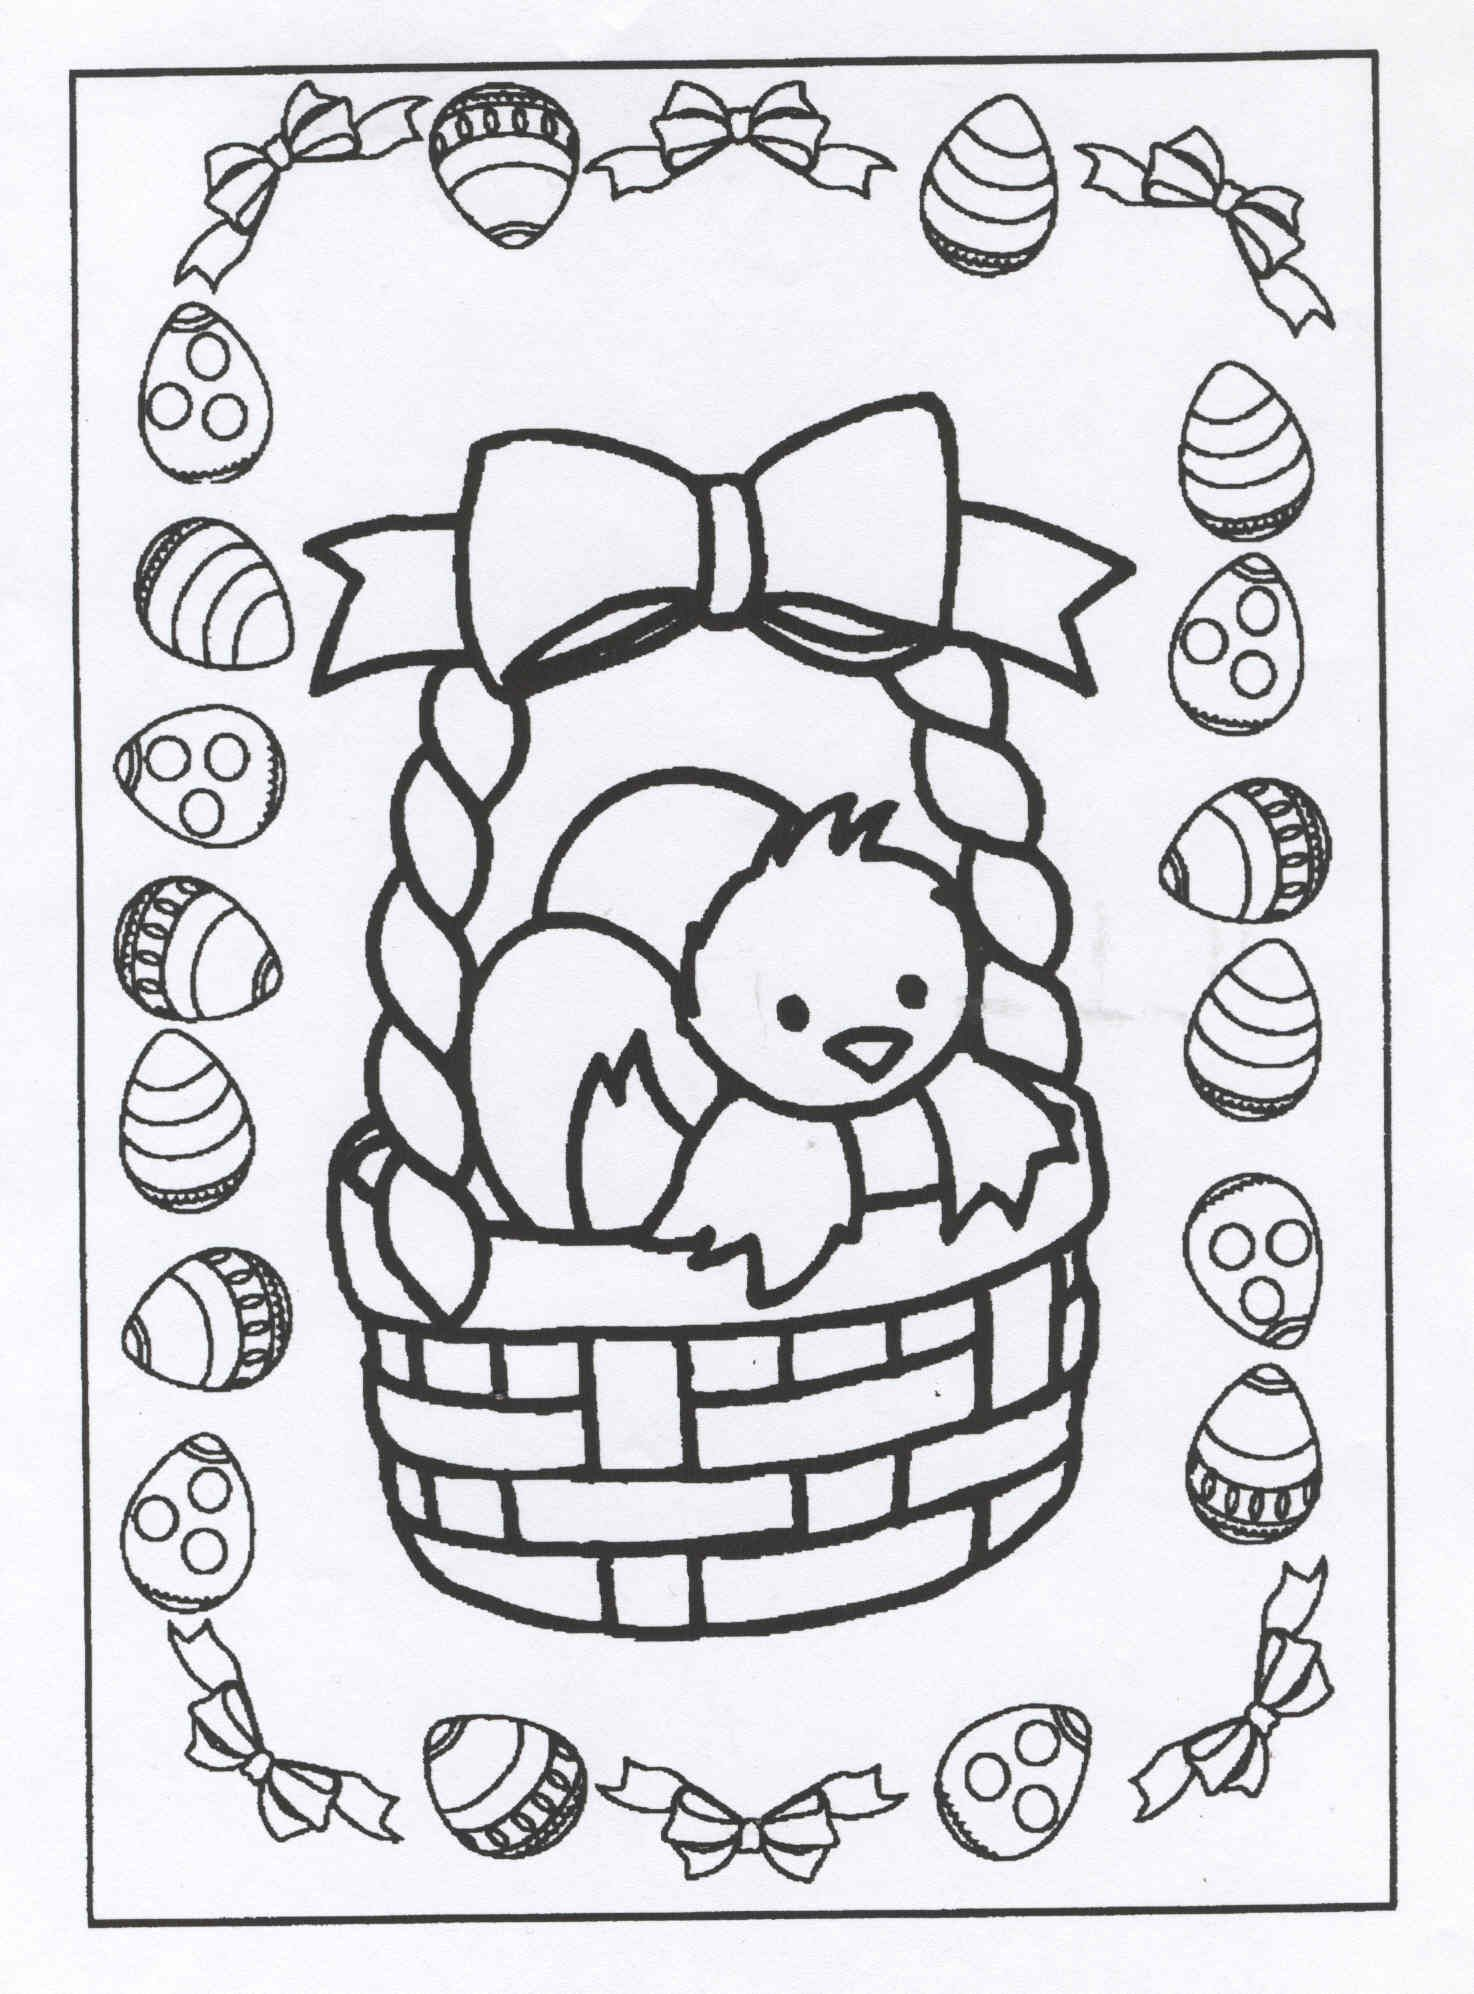 Kleurplaten Pasen Coloring Pages Easter Coloring Sheets Easter Colouring